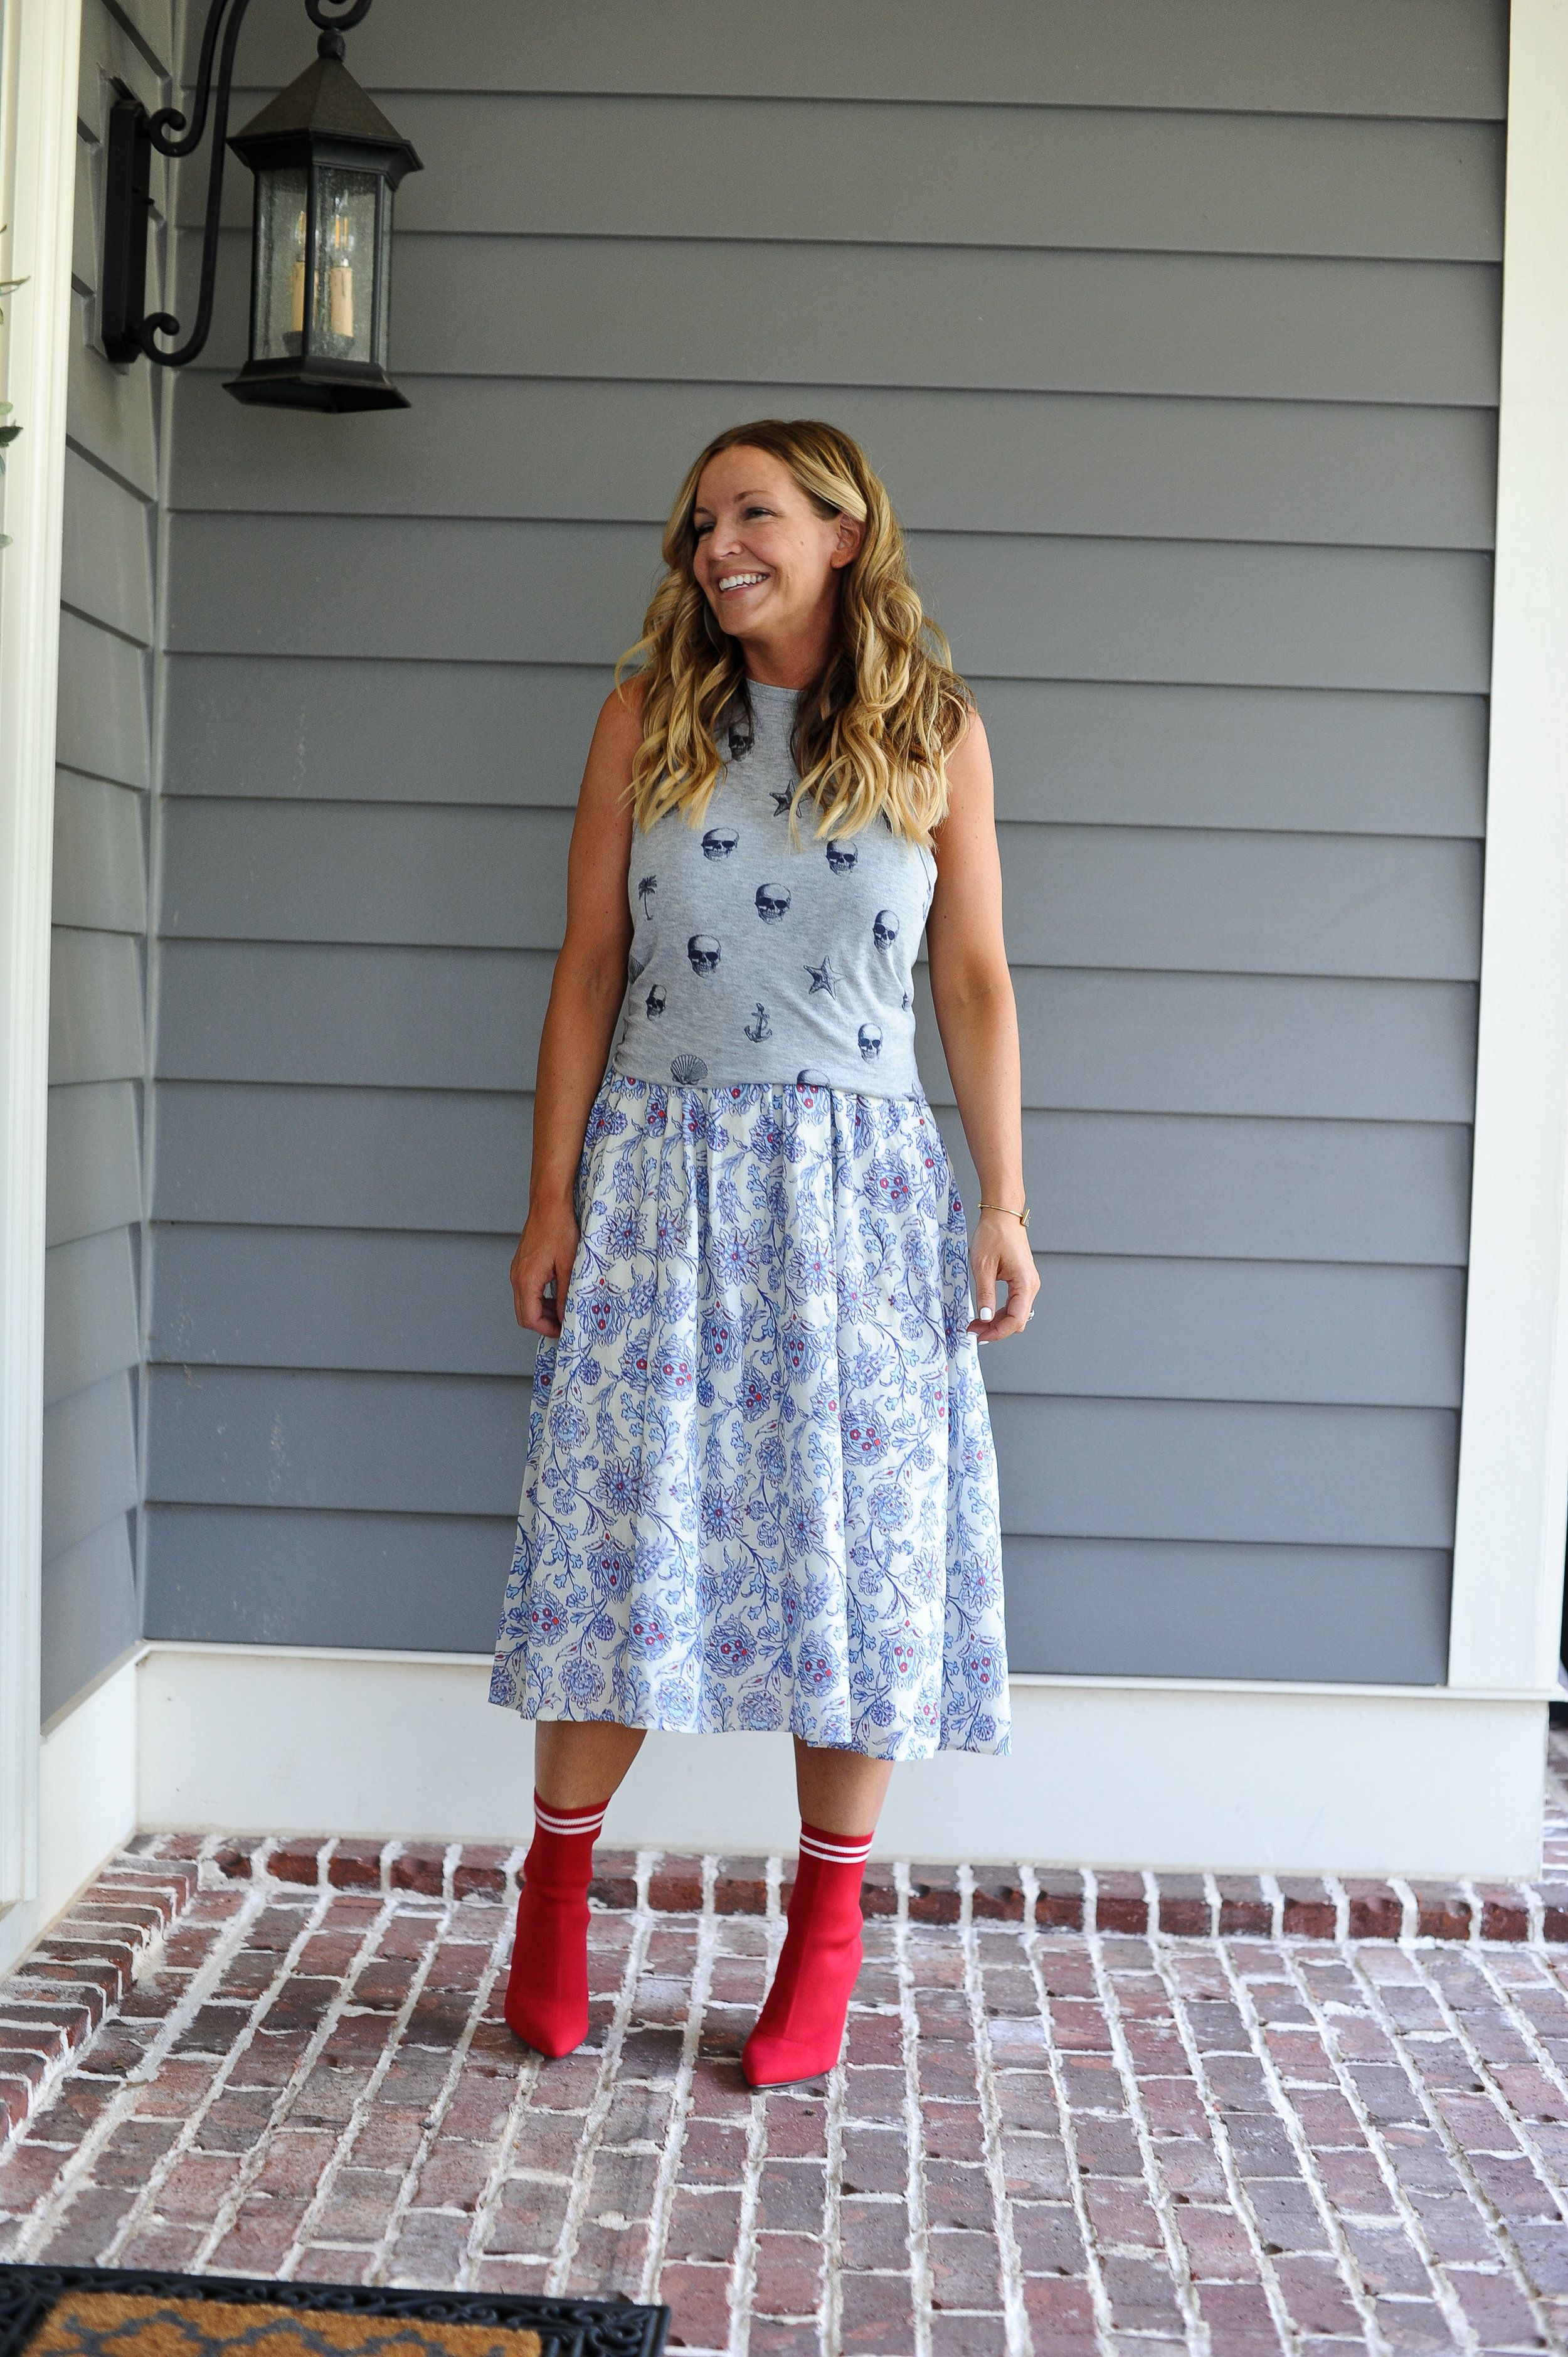 How To Layer A Summer Dress To Wear In Spring Or Fall How To Transition A Summer Dress Into Fall Spring Ratmj Blog Summer Dresses Summer Fashion Dresses [ 3757 x 2500 Pixel ]